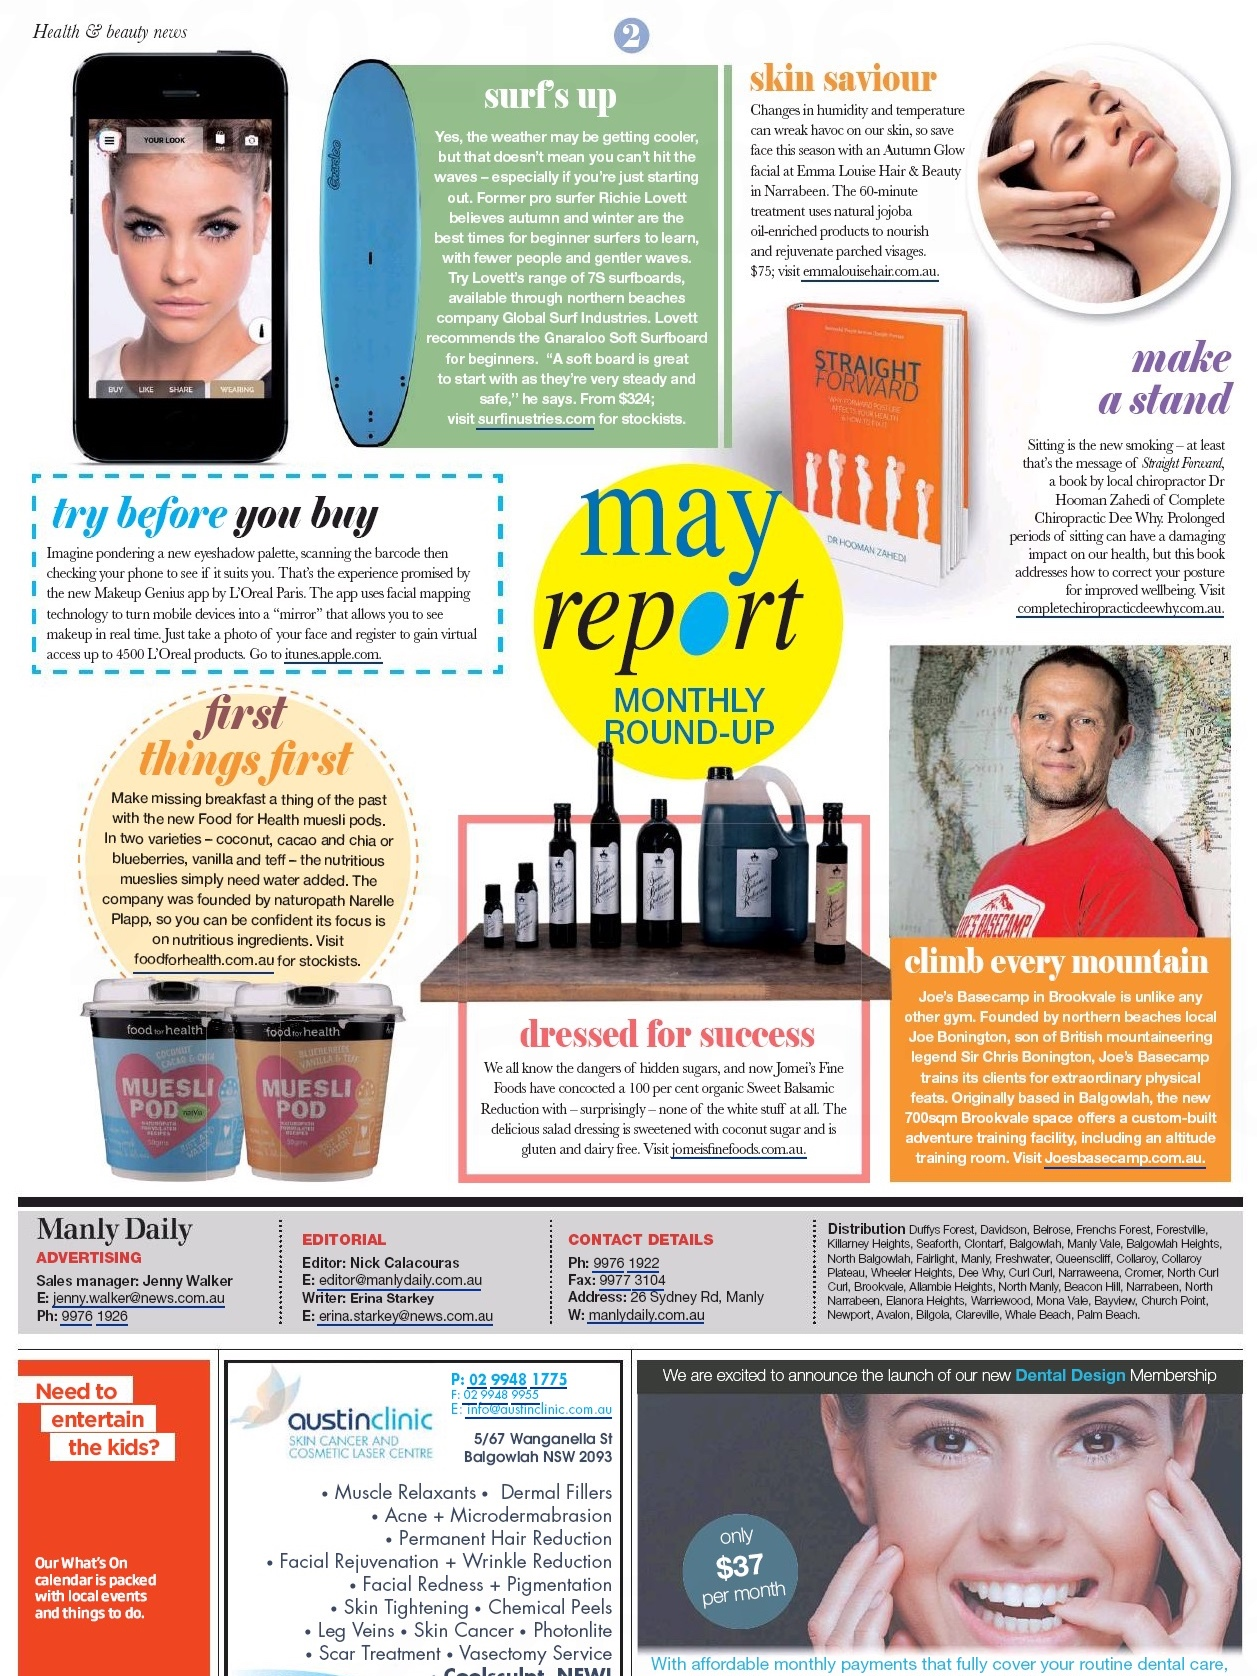 ManlyDaily_26thMay2015_Feature.jpg